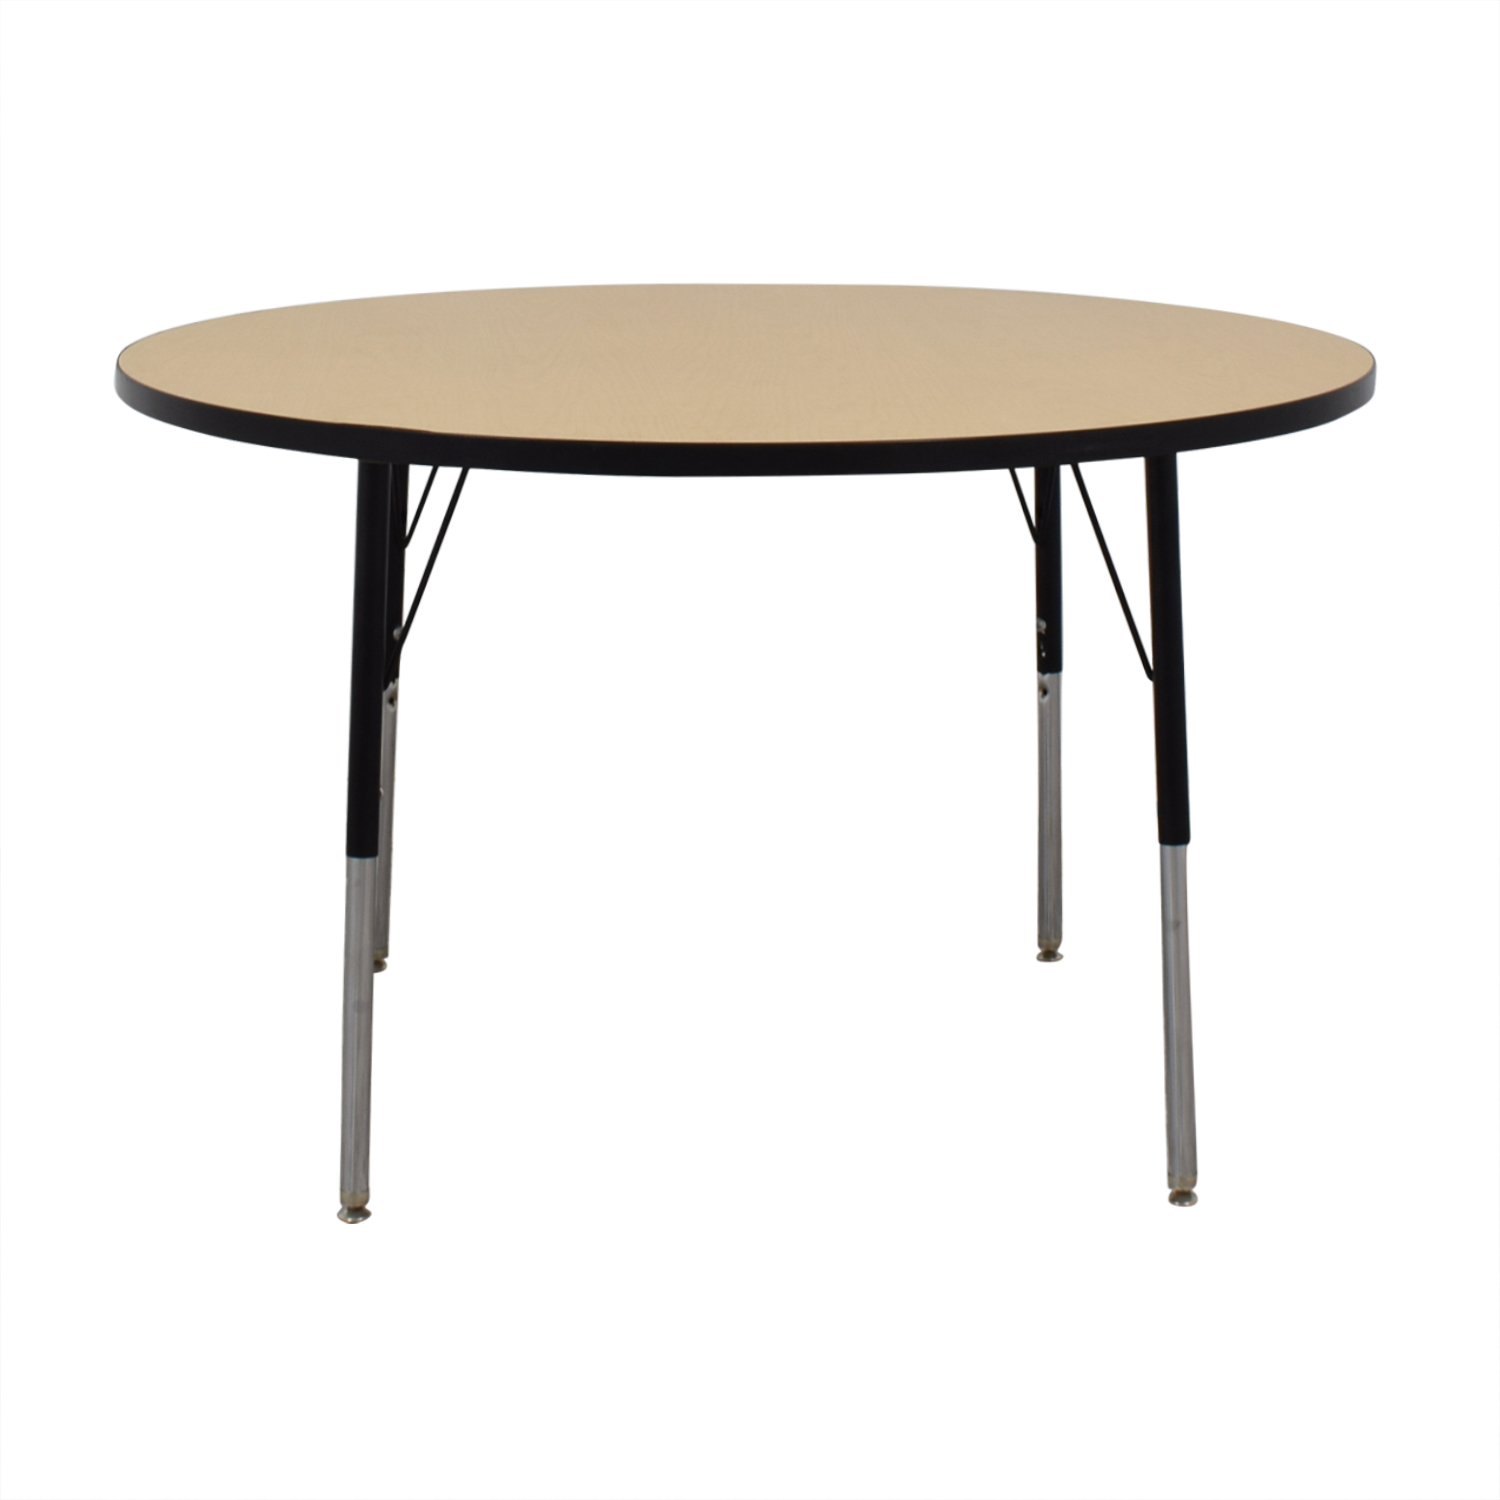 Round Activity Table used